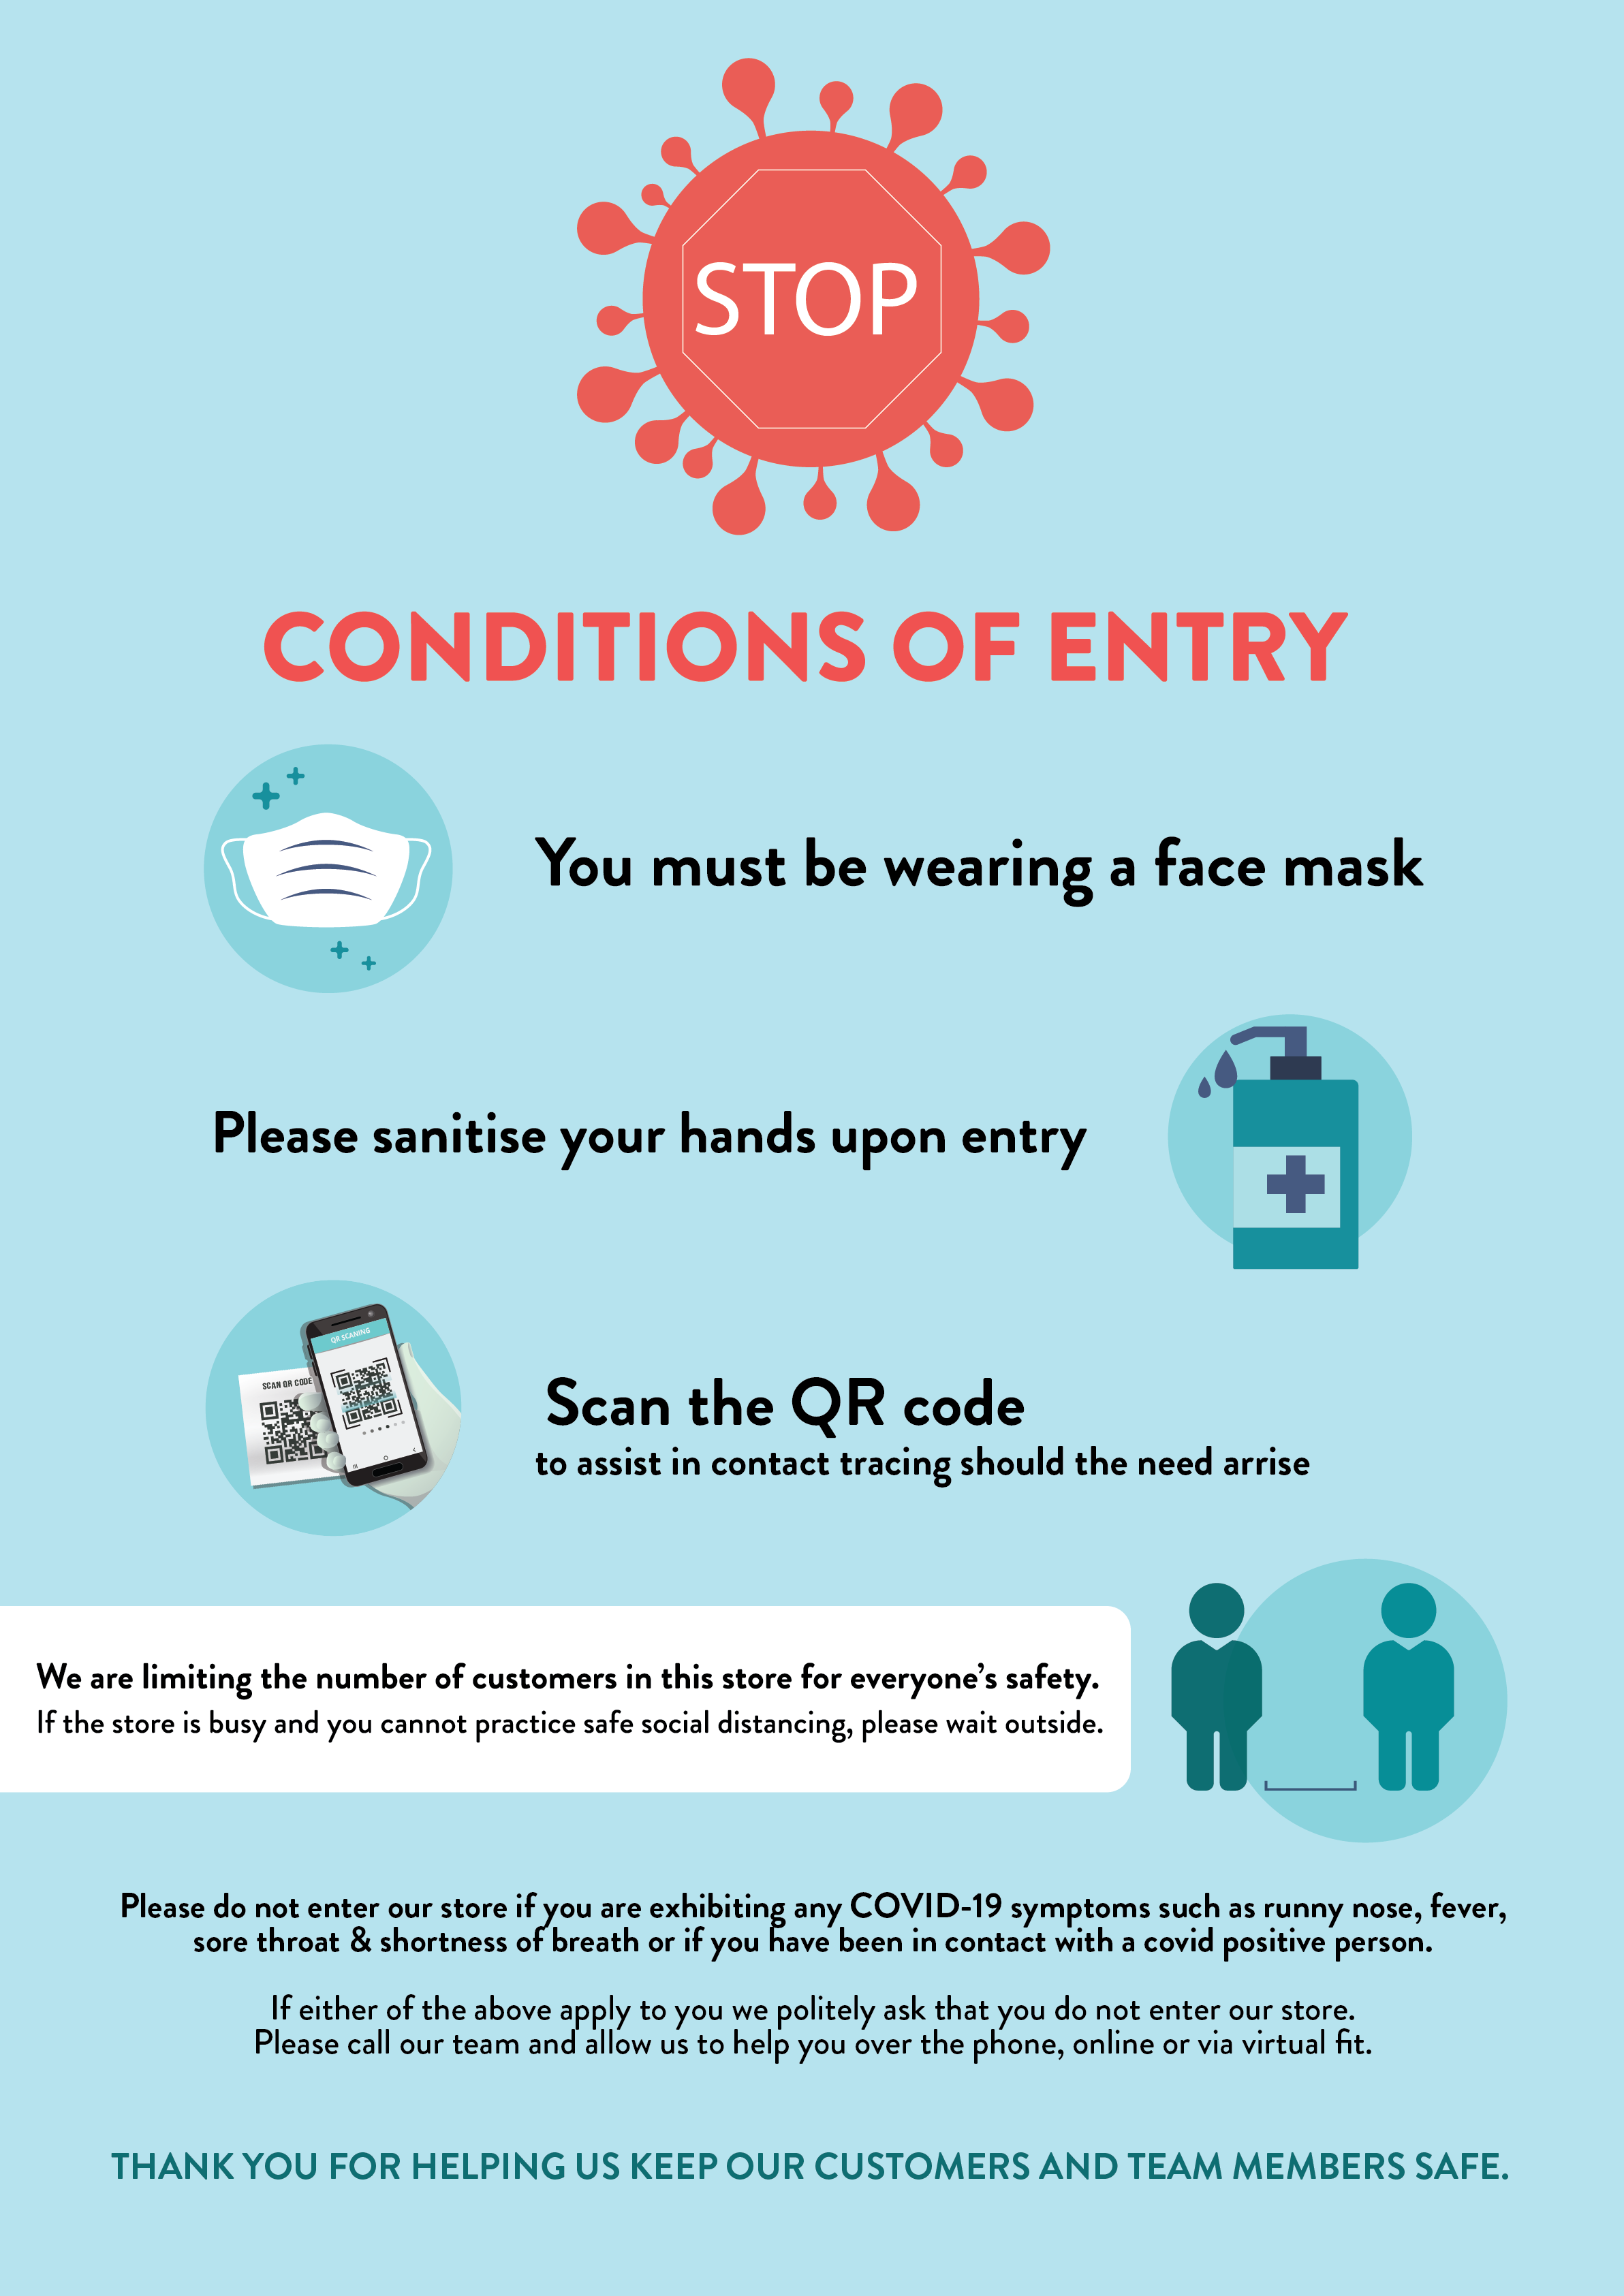 CONDITION OF ENTRY